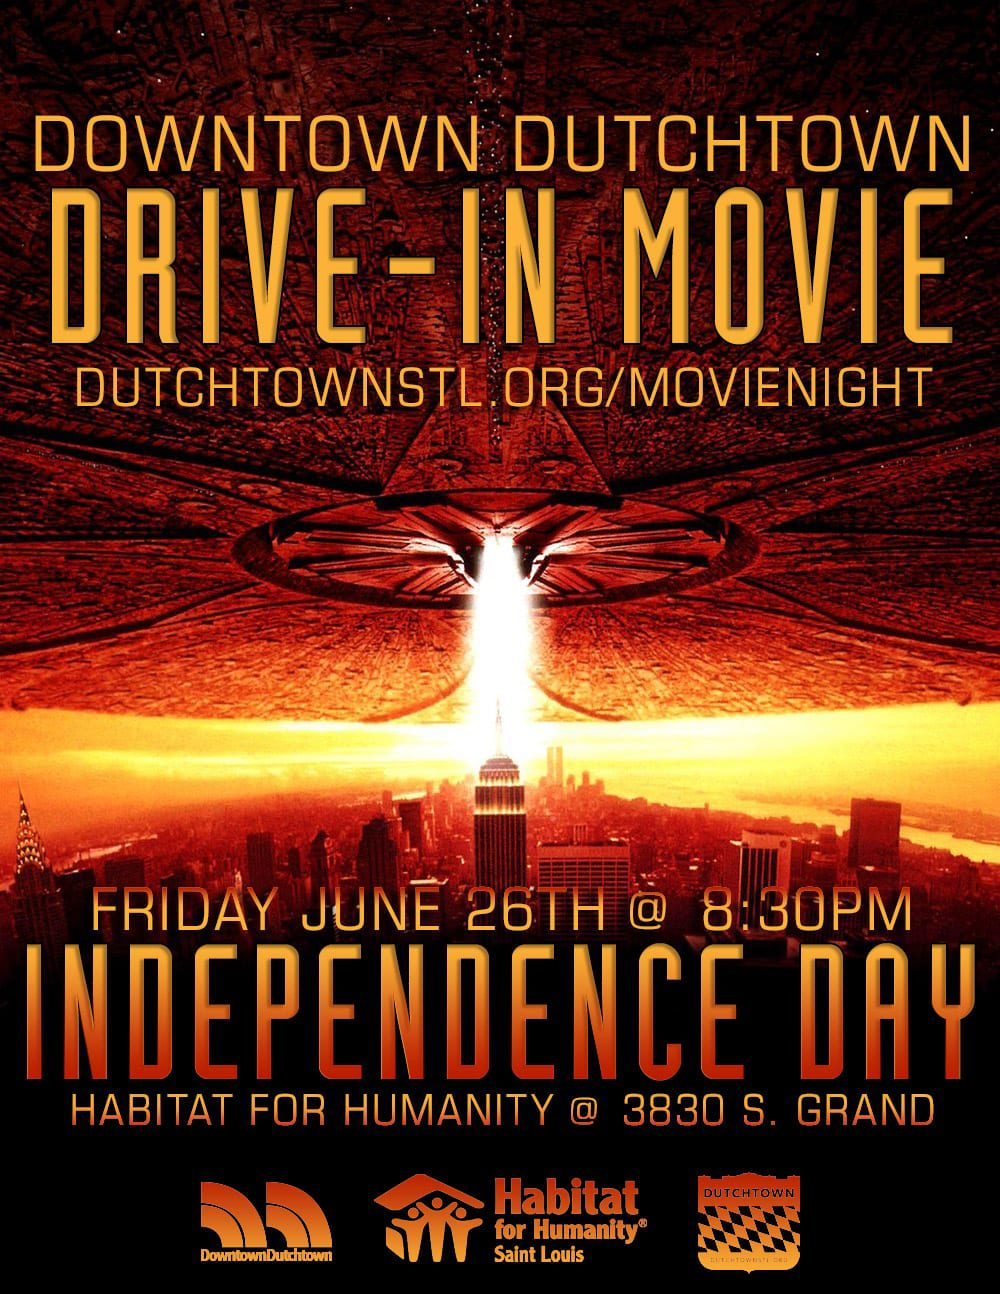 Downtown Dutchtown Drive-In Movie featuring Independence Day.